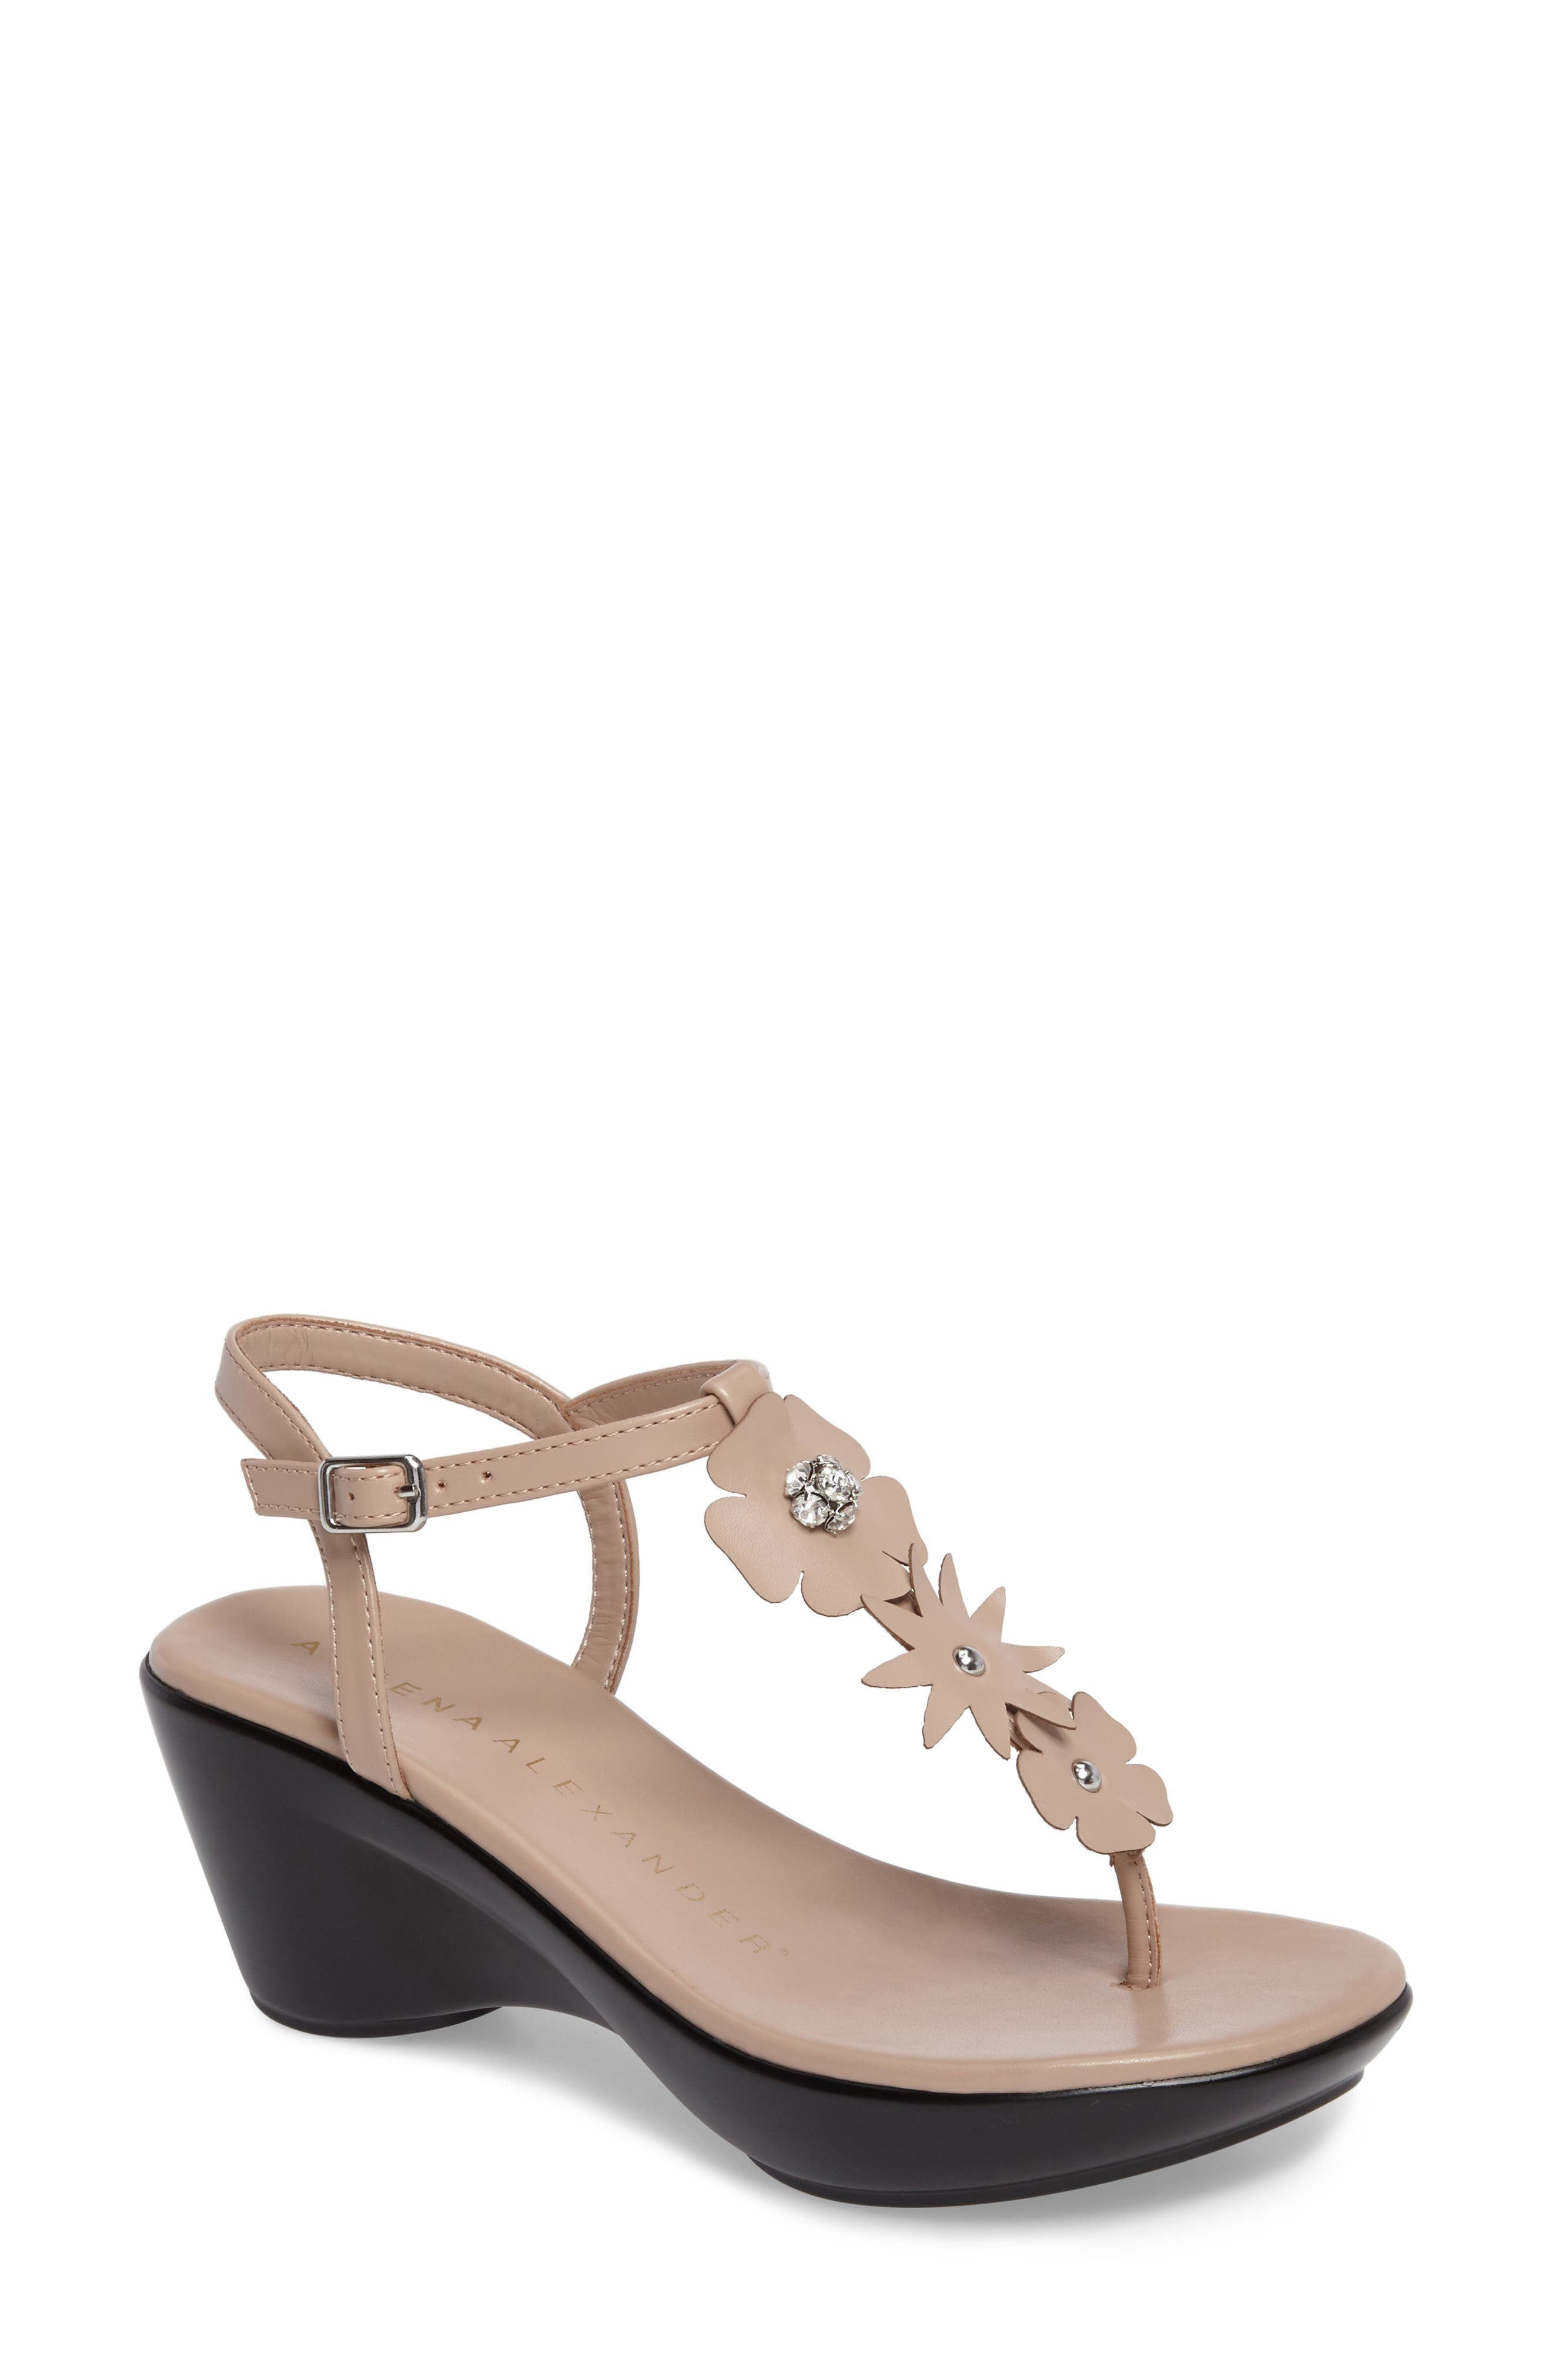 Gianna Embellished T-Strap Wedge,                             Main thumbnail 3, color,